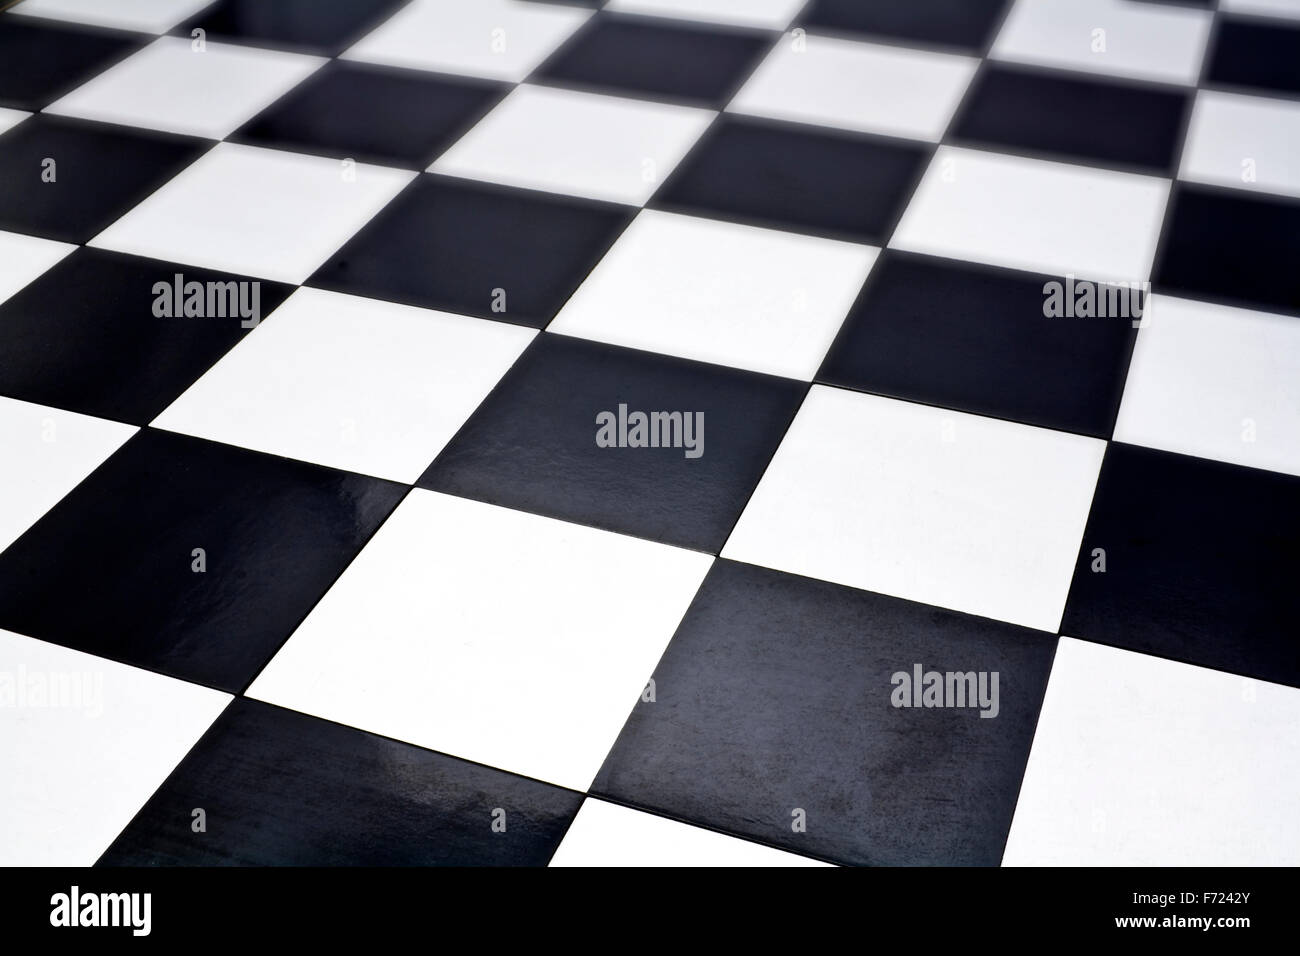 Close up image of chessboard - Stock Image